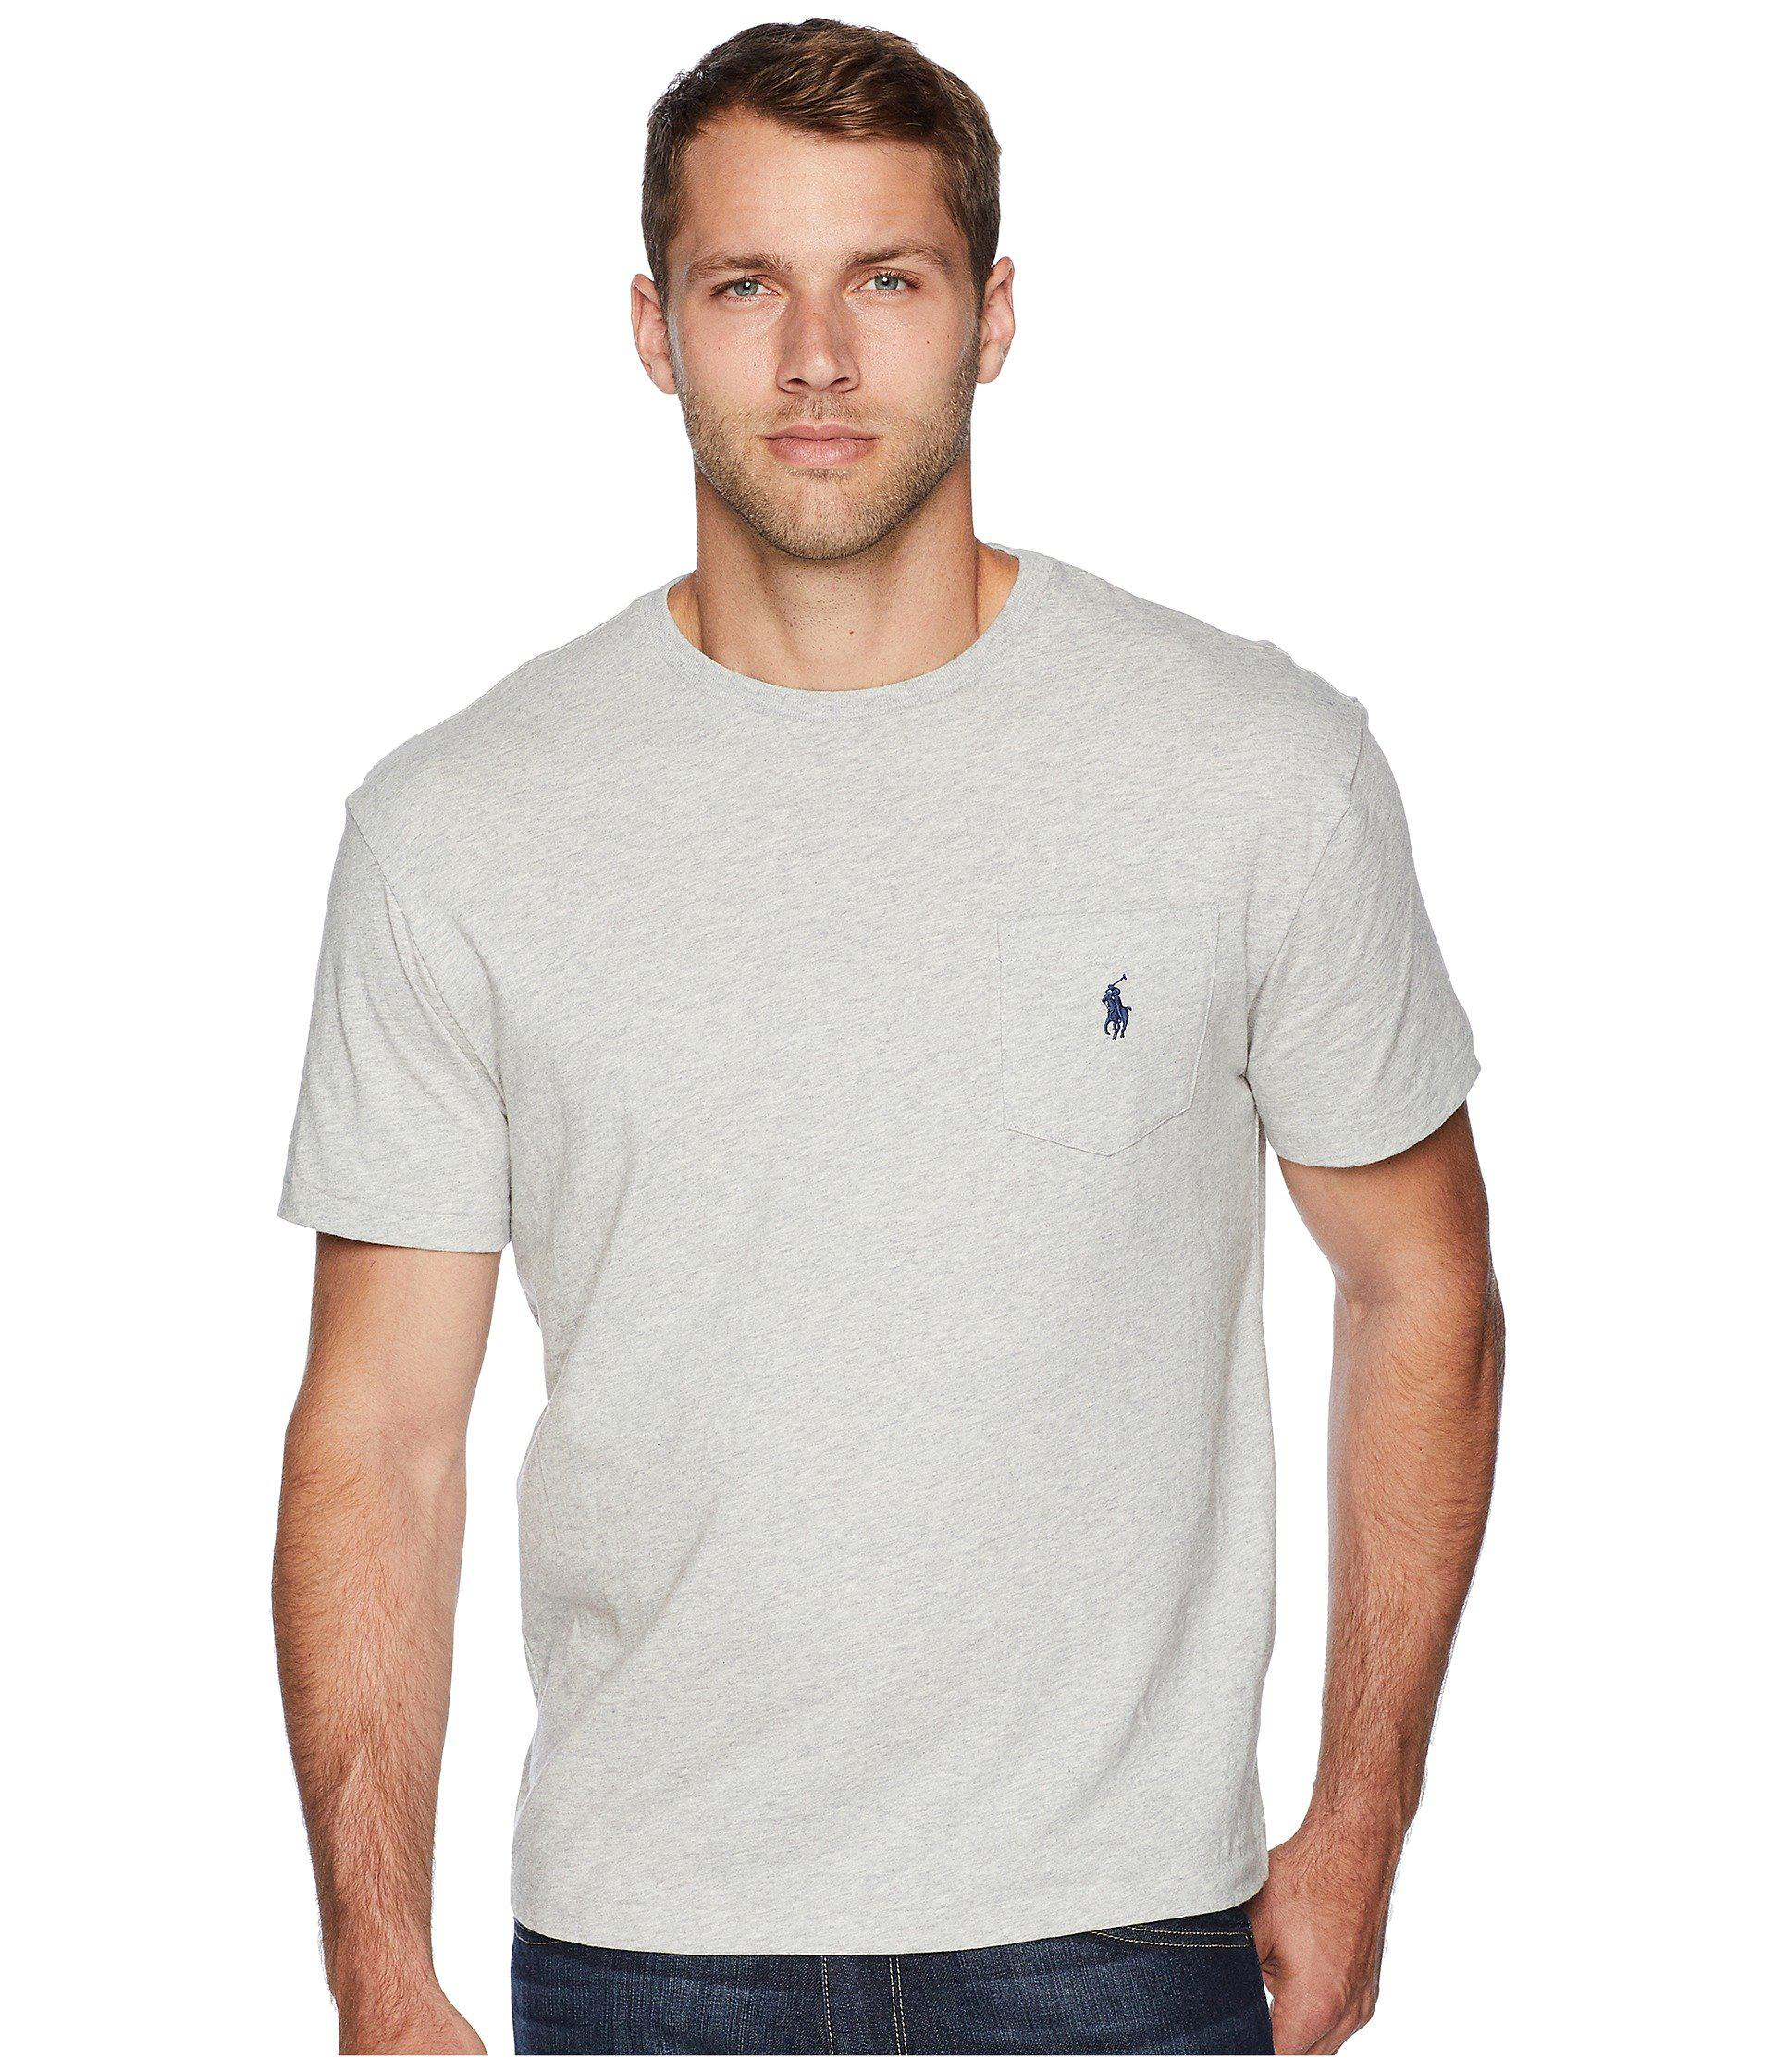 cc2ab2a97d81 Lyst - Polo Ralph Lauren Short Sleeve Crew Neck Pocket T-shirt ...